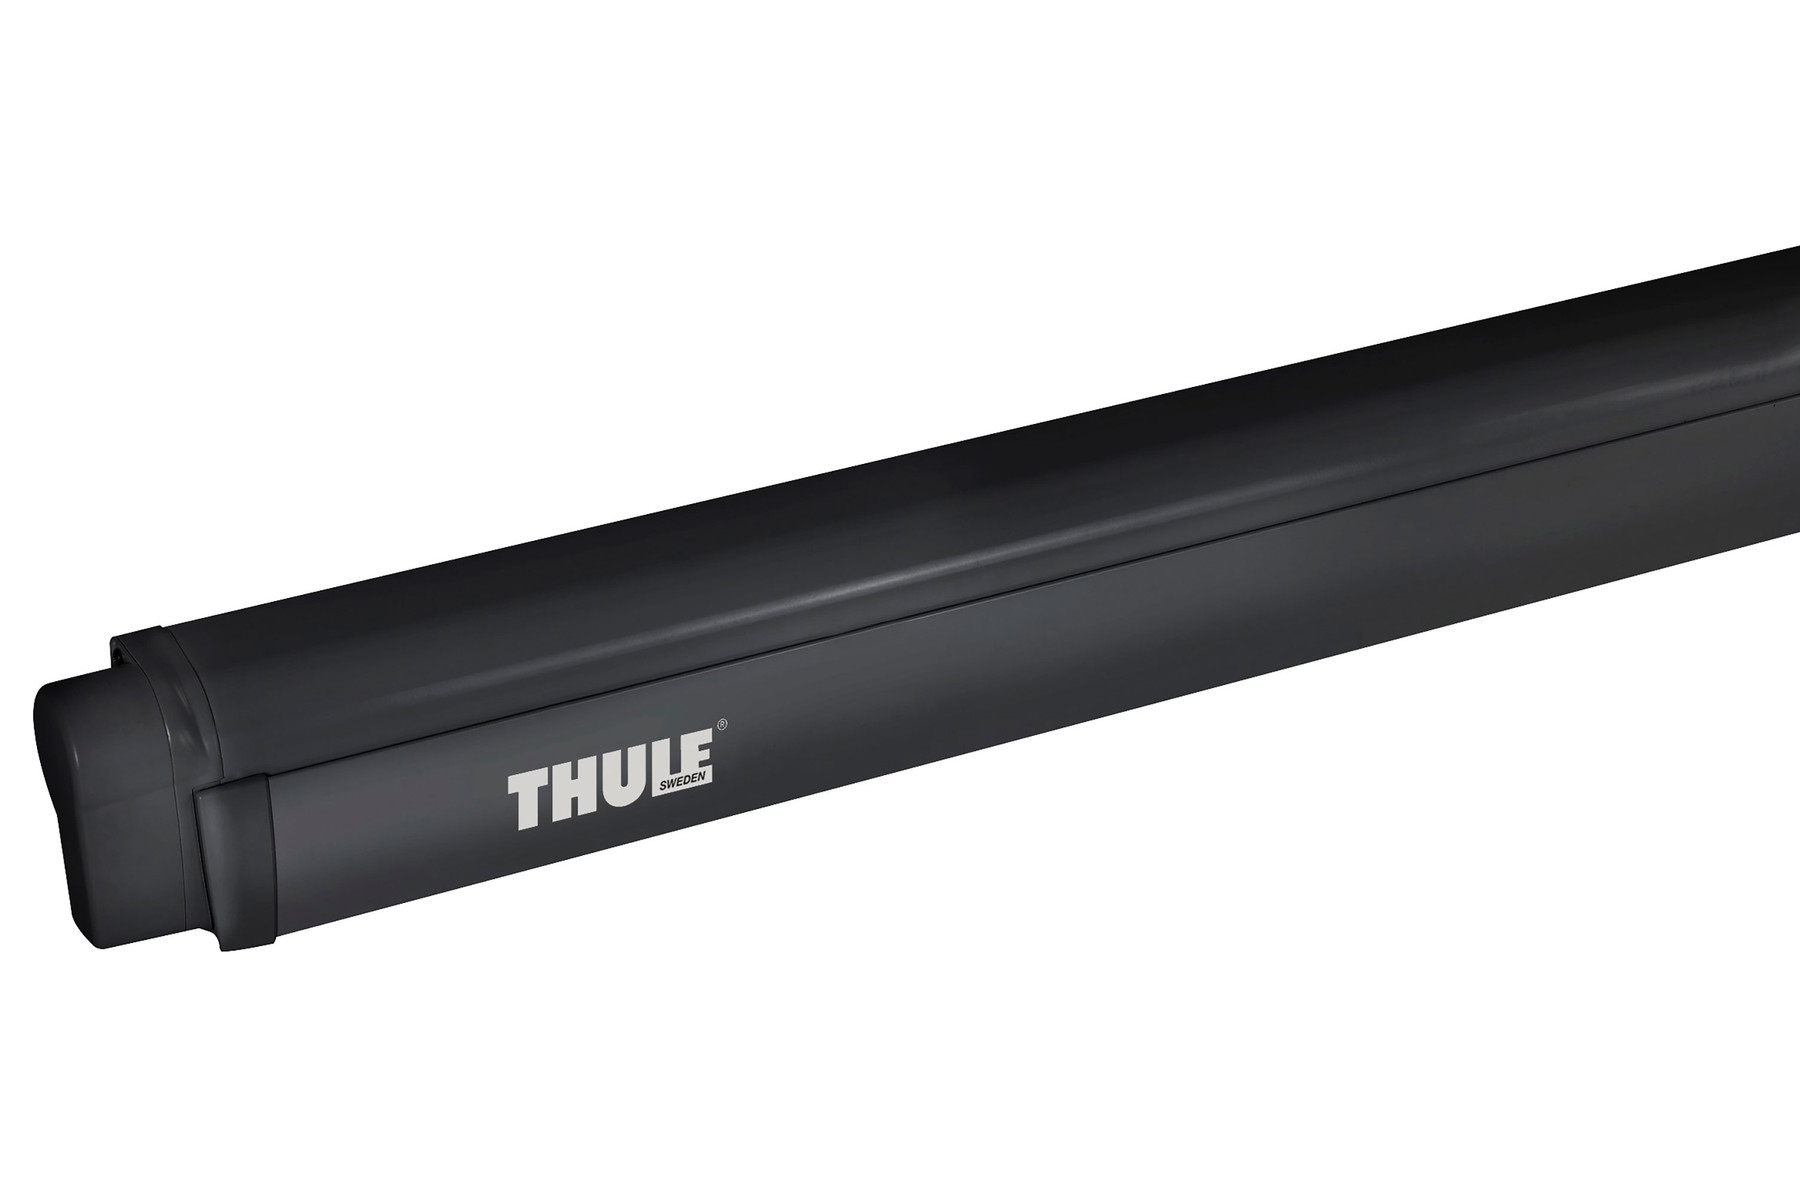 Awning Thule HideAway